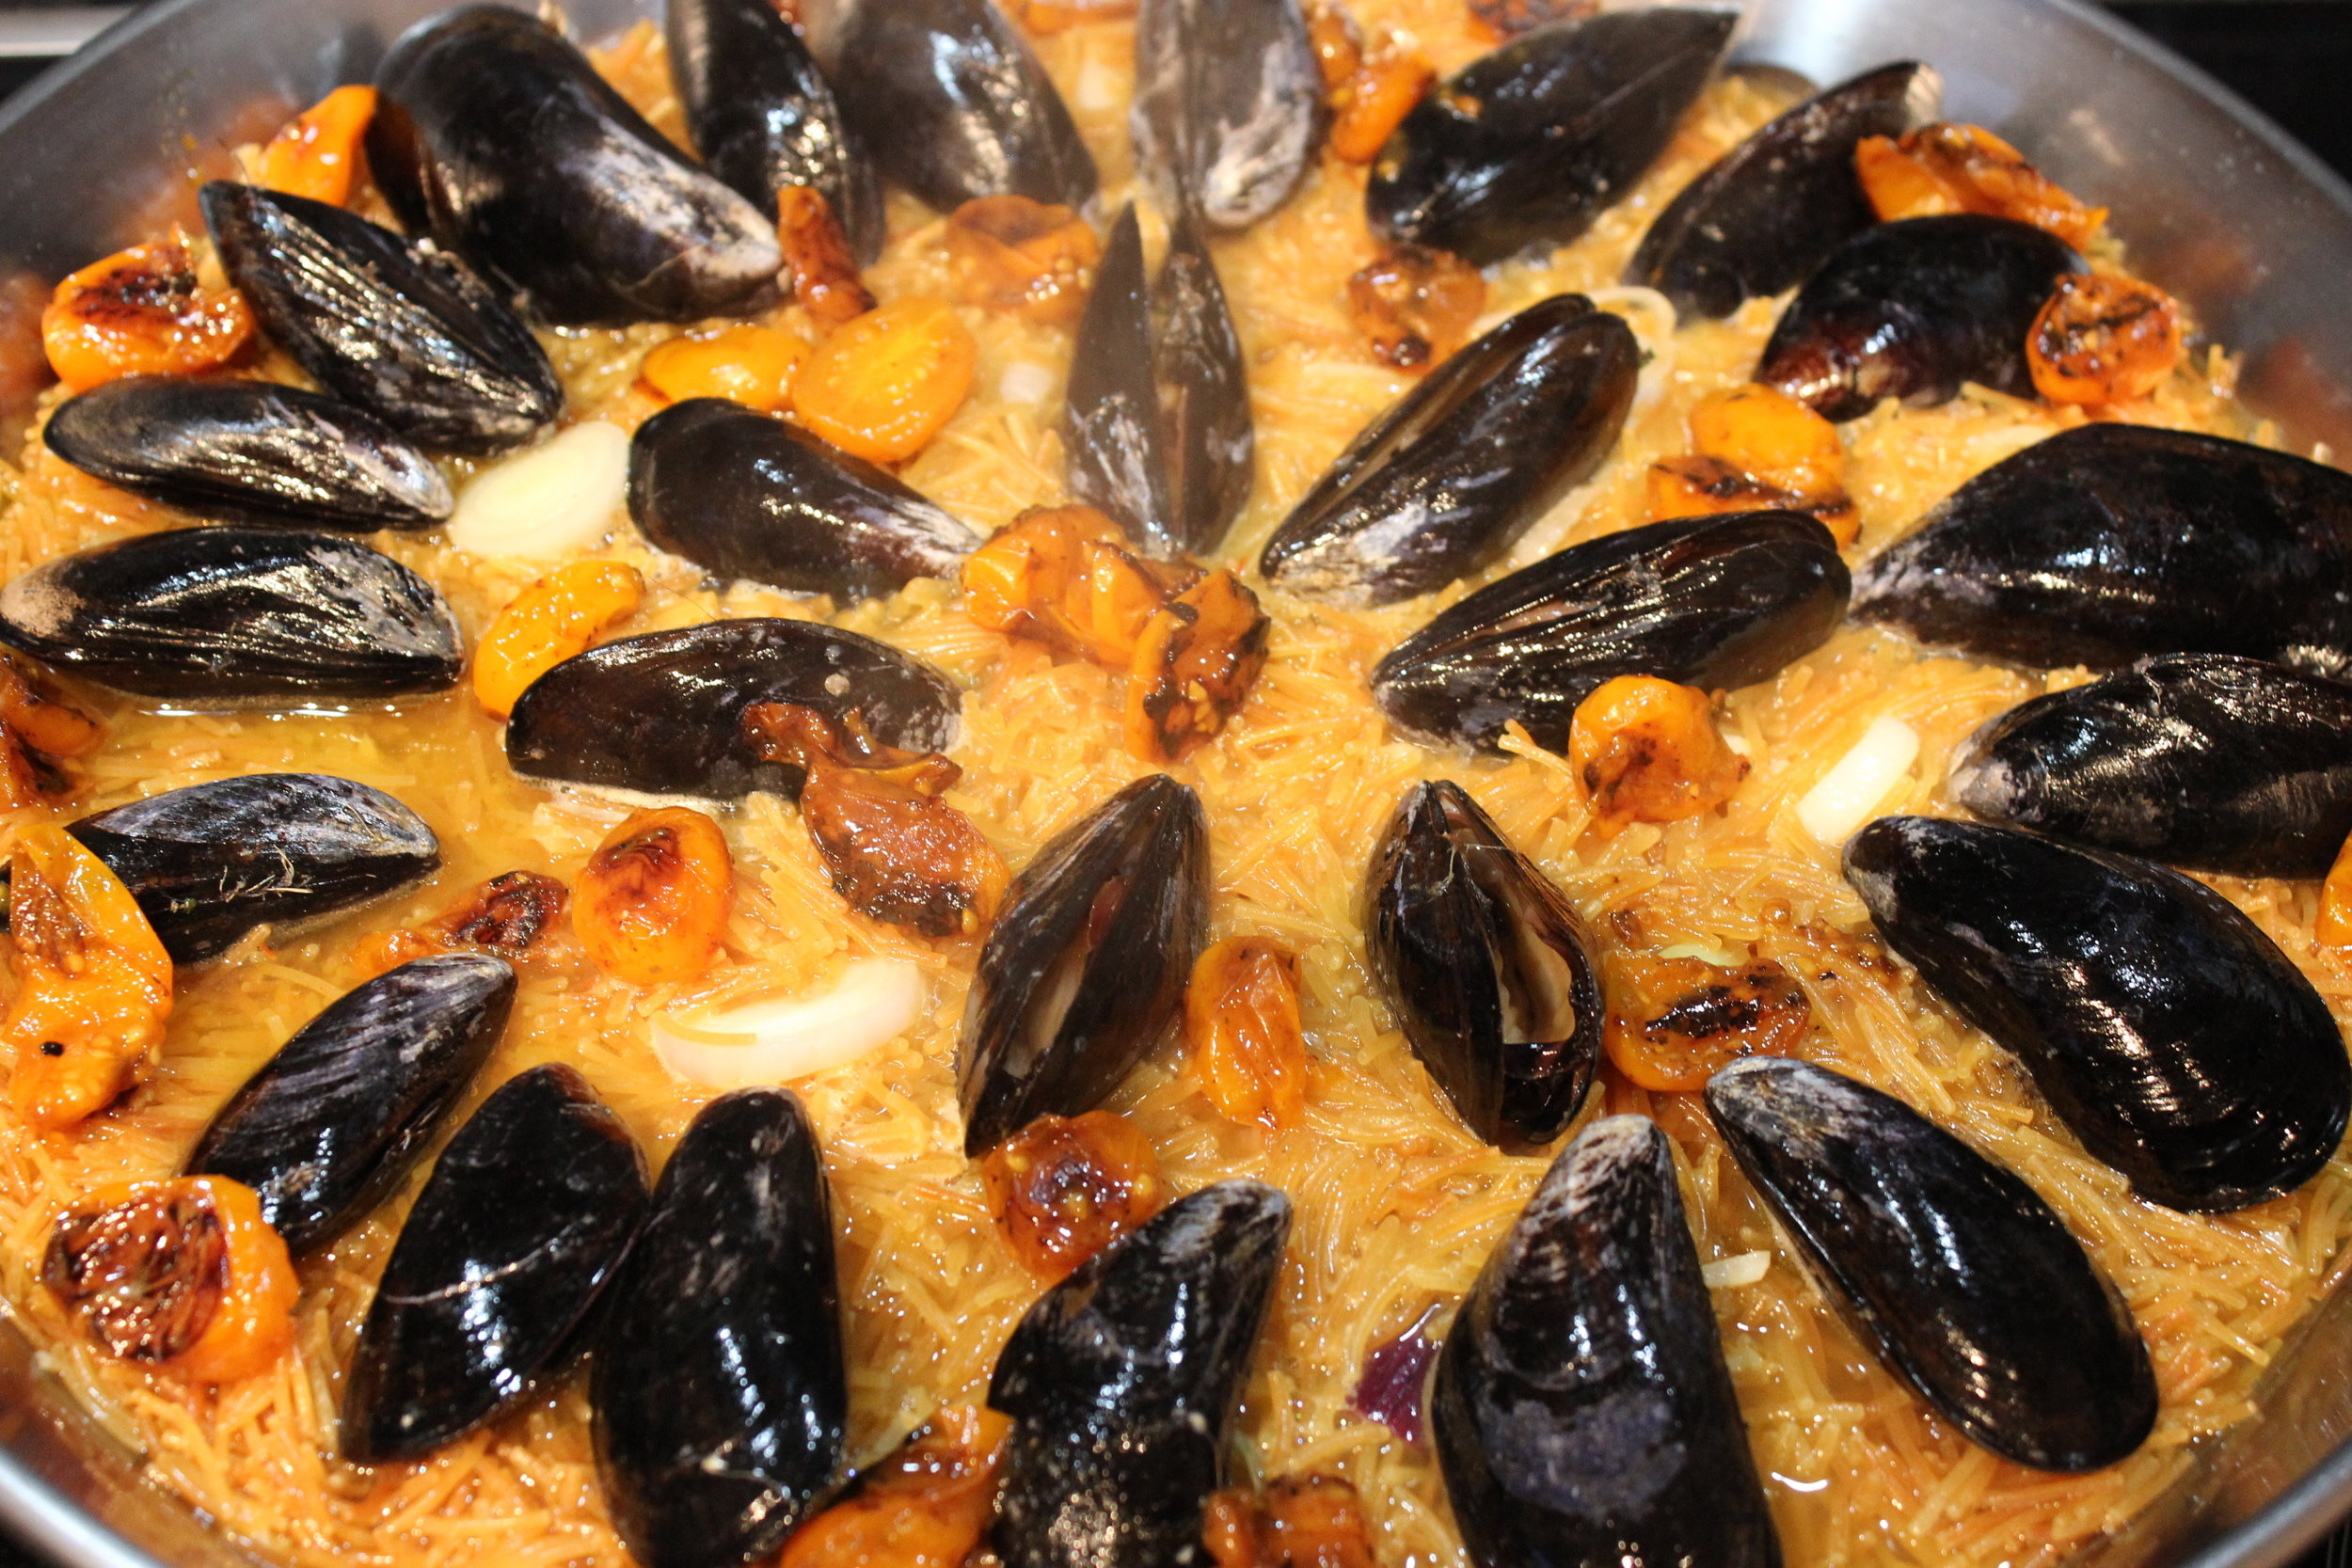 Arrange the mussels so they have enough room to open